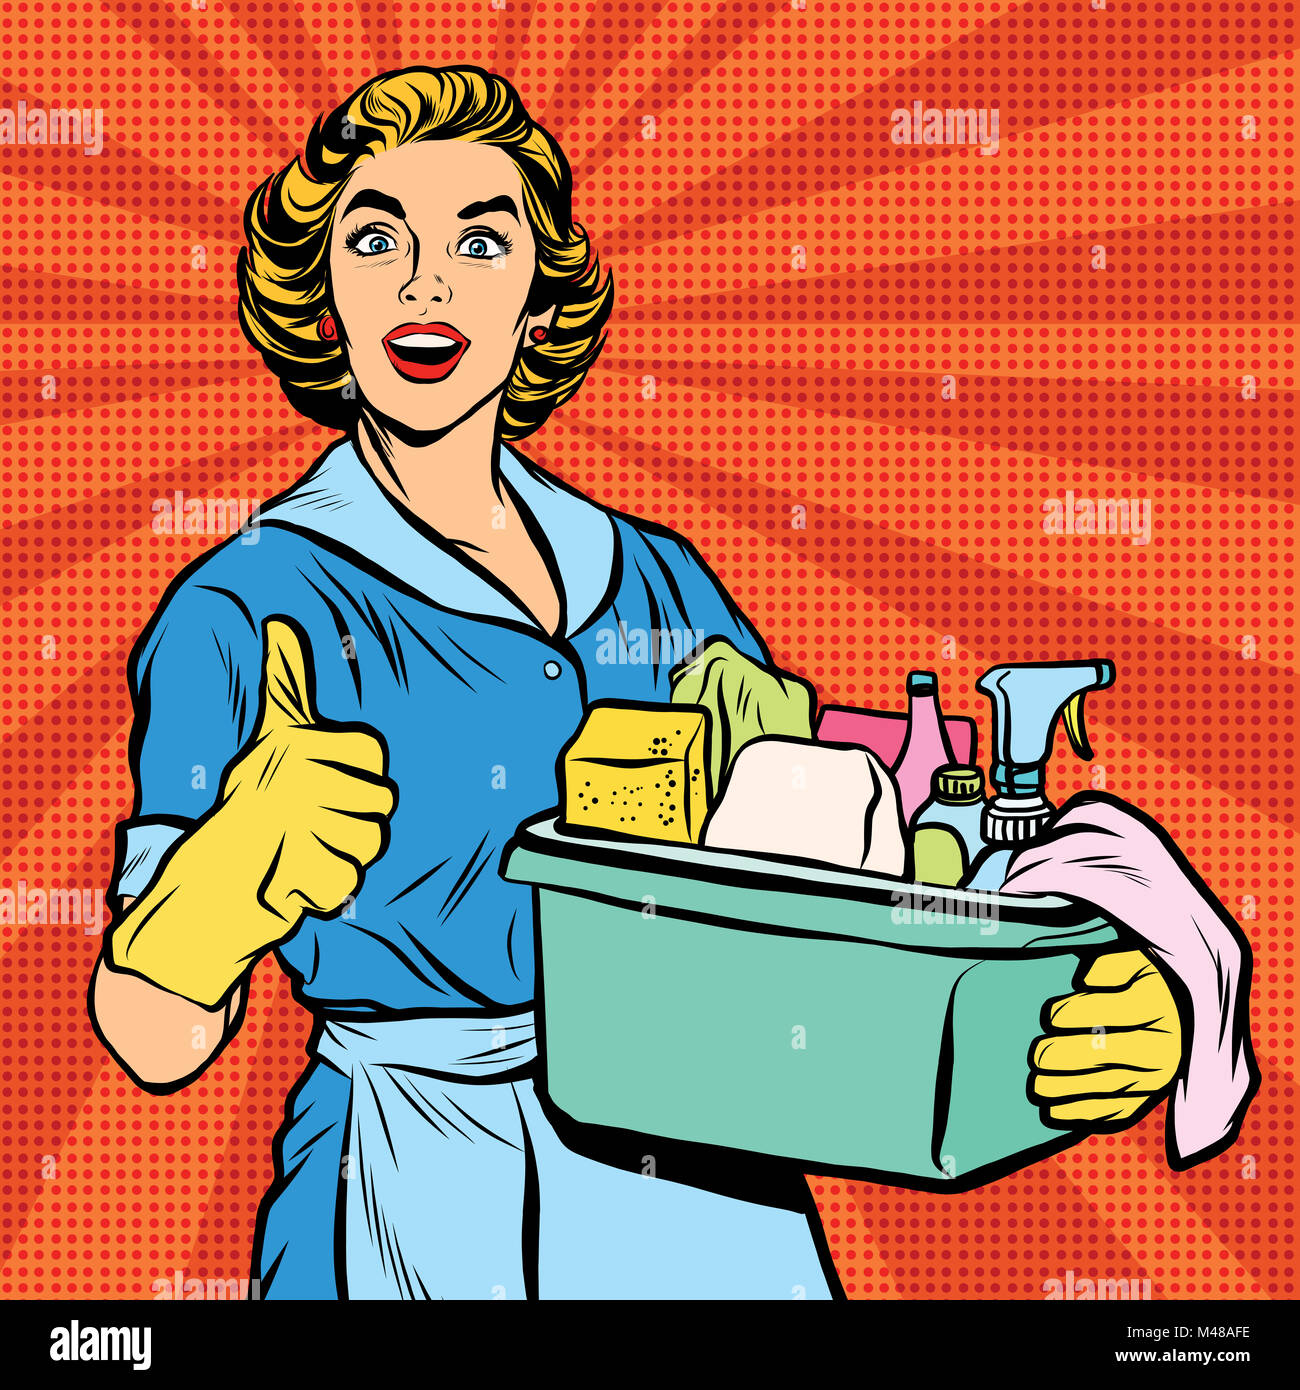 Housewife Bucket Cleaning Lady Stock Photos Housewife